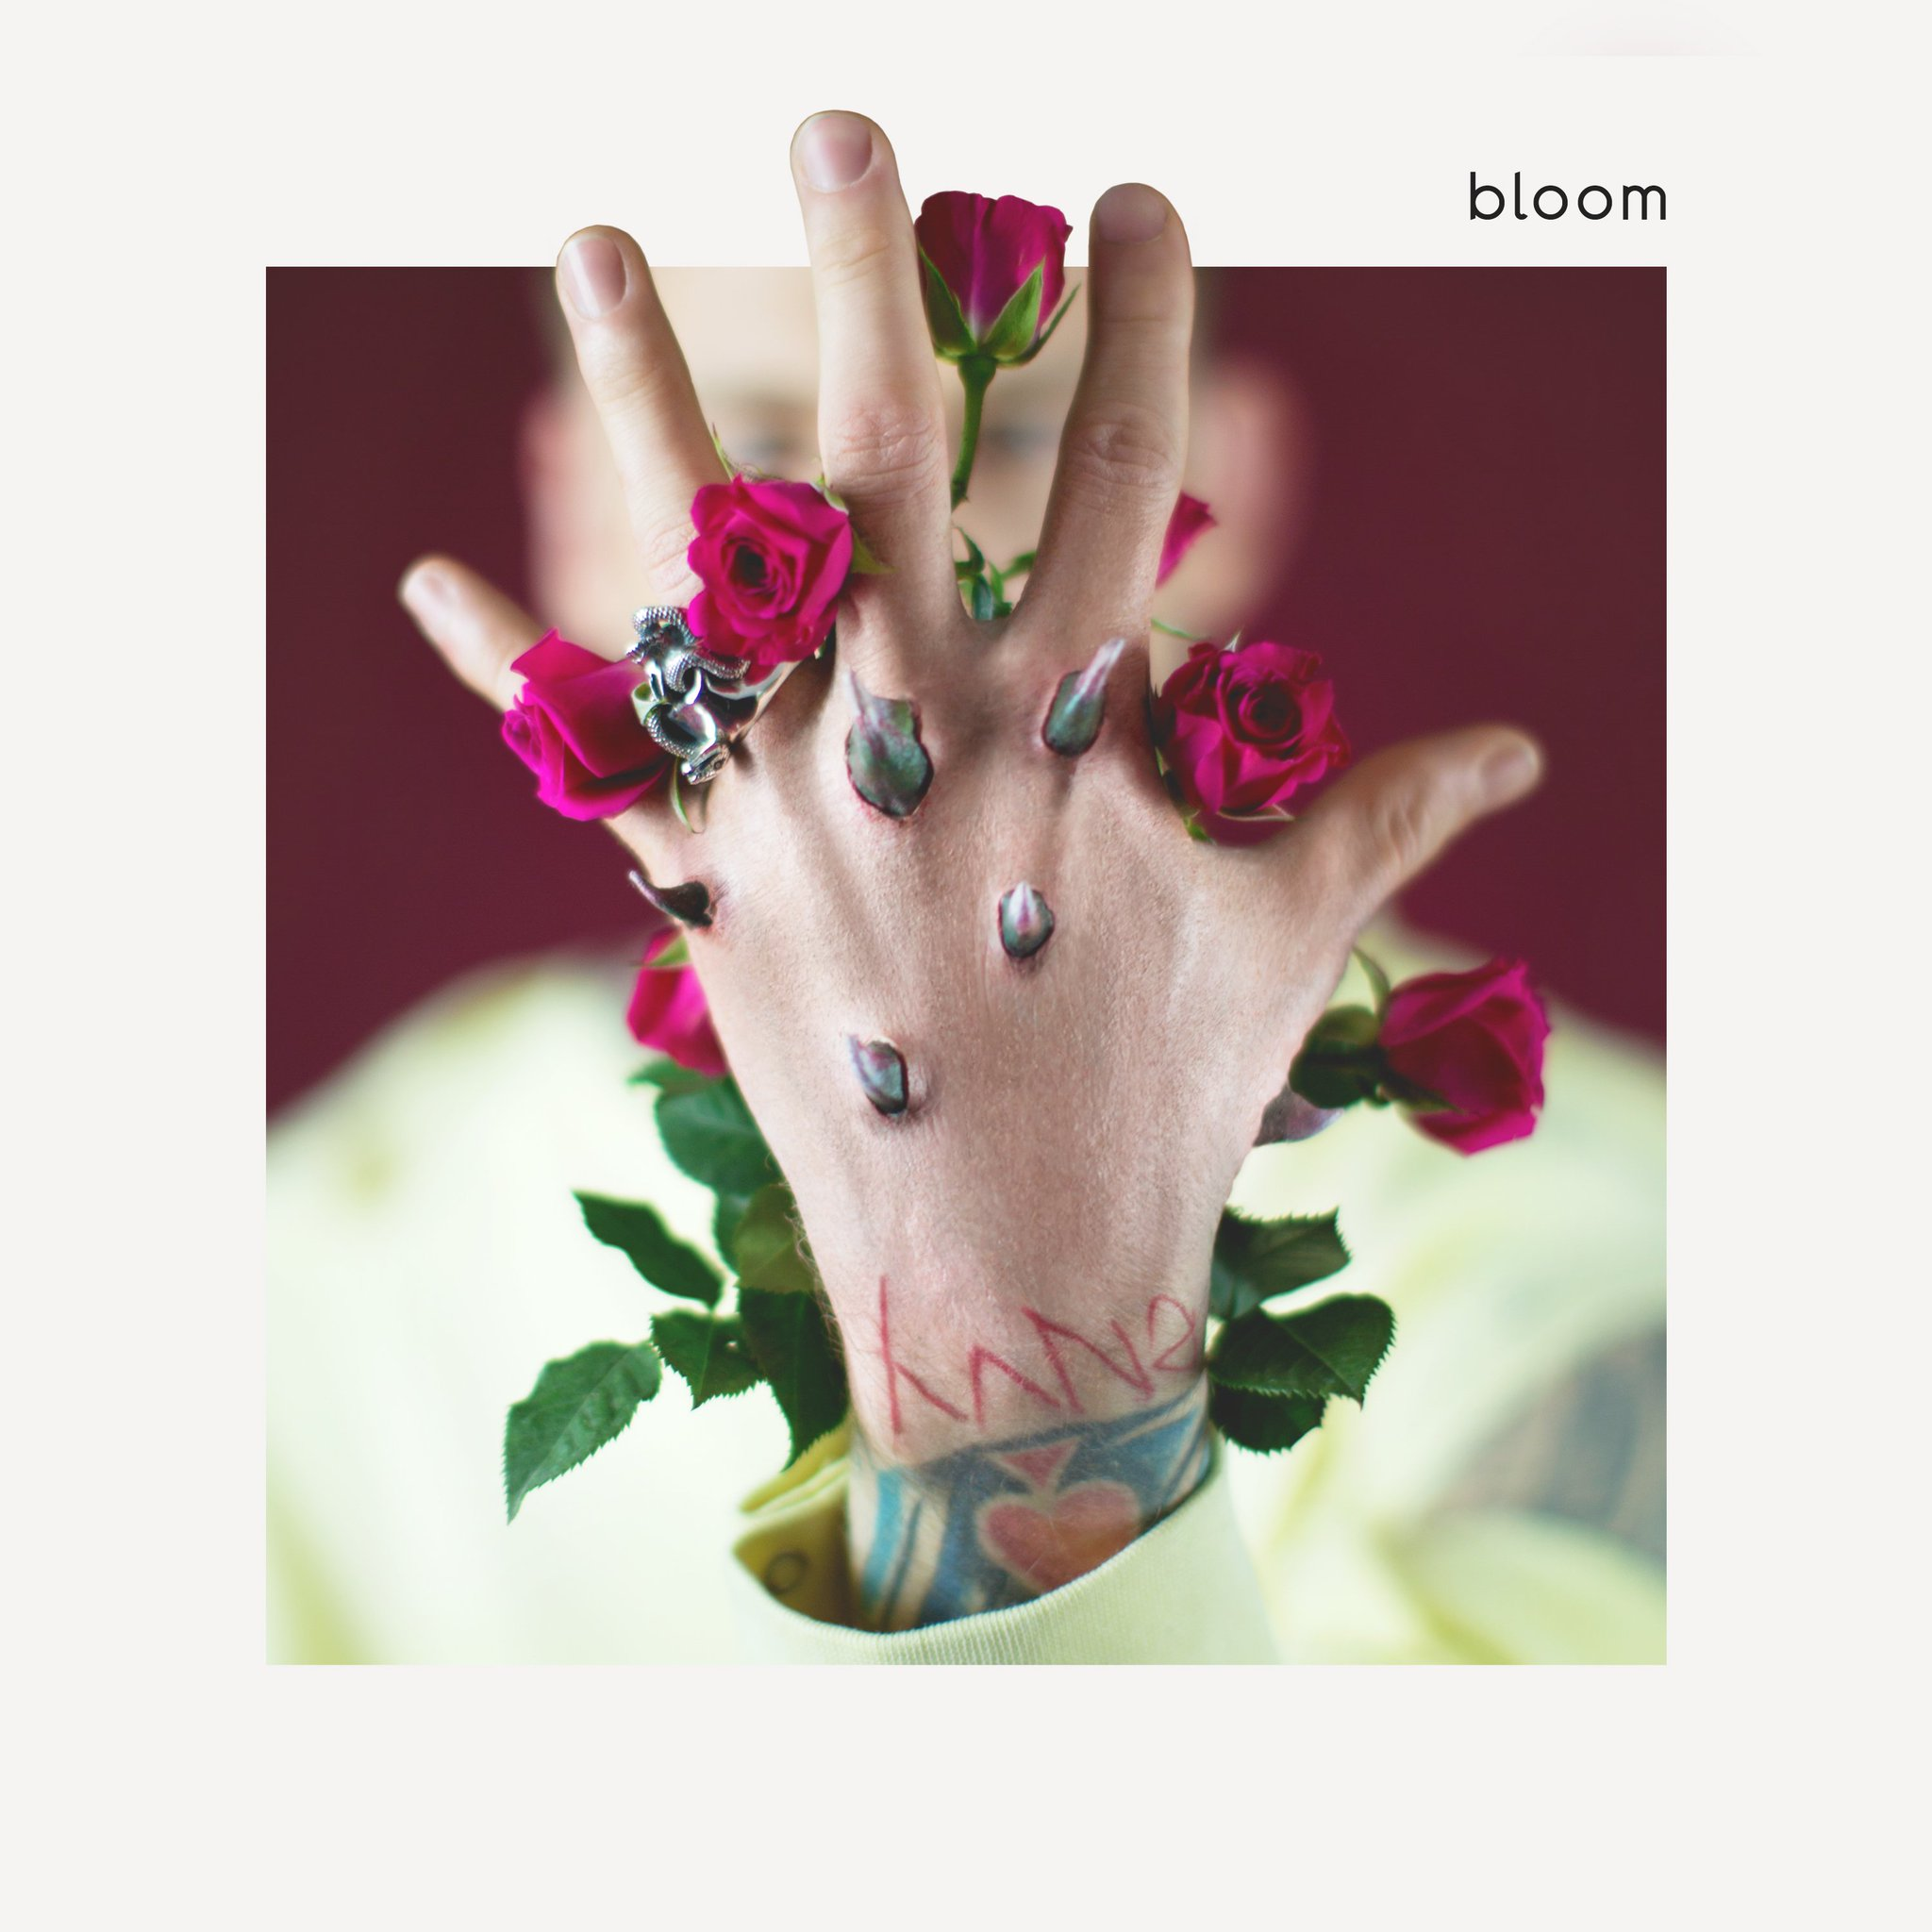 #bloom now available for pre-order --> https://t.co/E9nvmmIcOH https://t.co/M8czOWh1J7